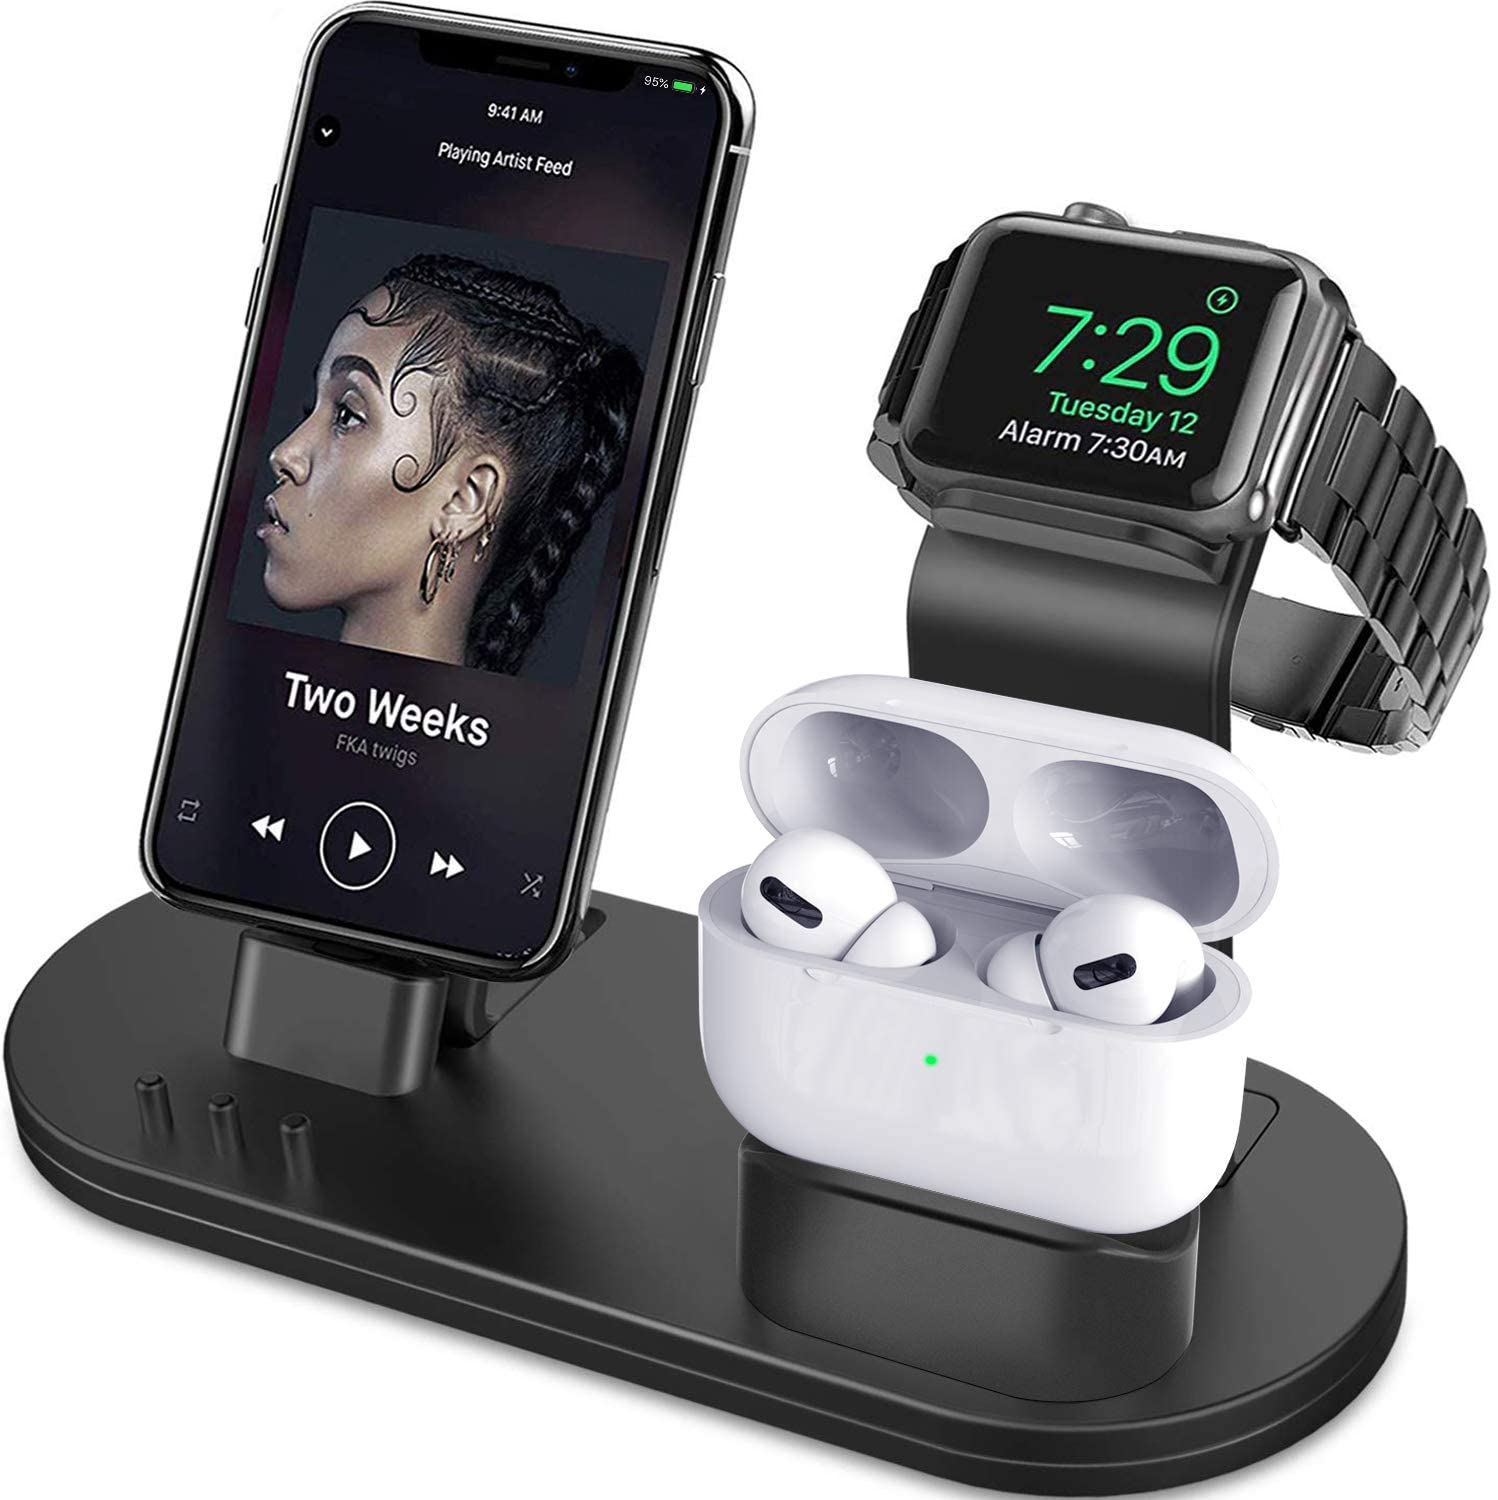 3-in-1 Charging Station - WorkwearToronto.com - Best Christmas Gifts for him For your husband or boyfriend - Amazon